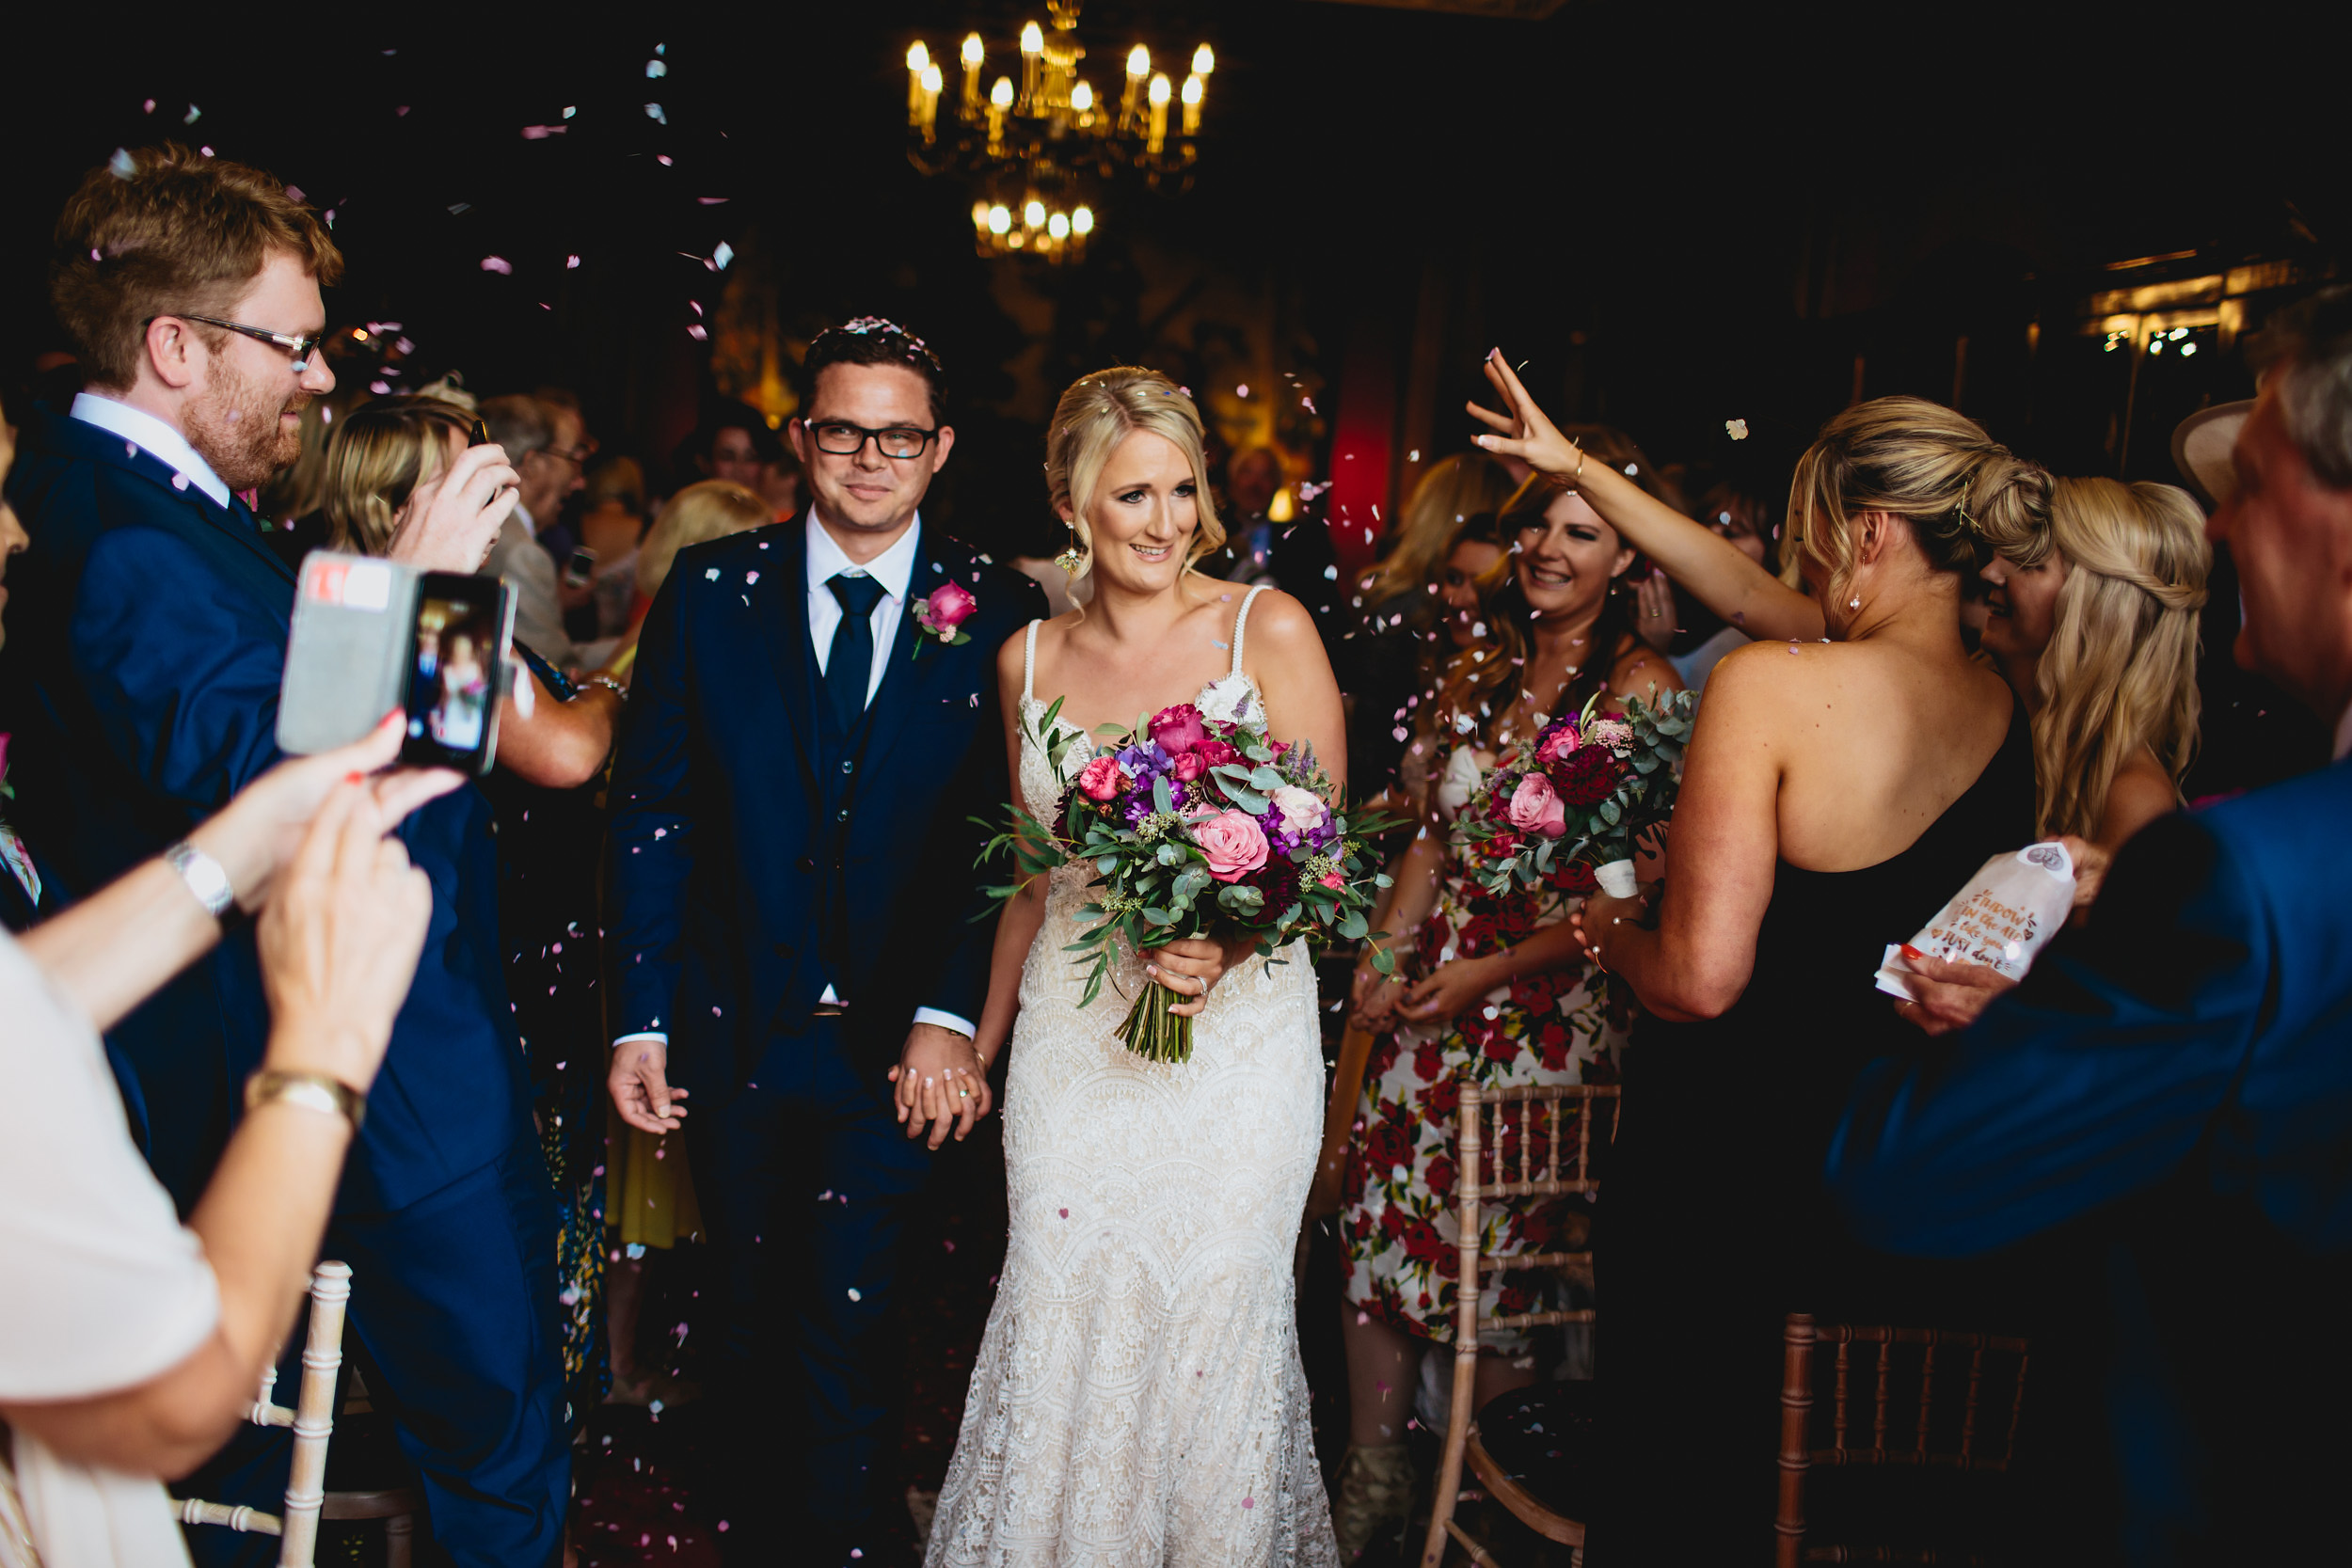 Guests throw confetti over the bride and groom at a wedding